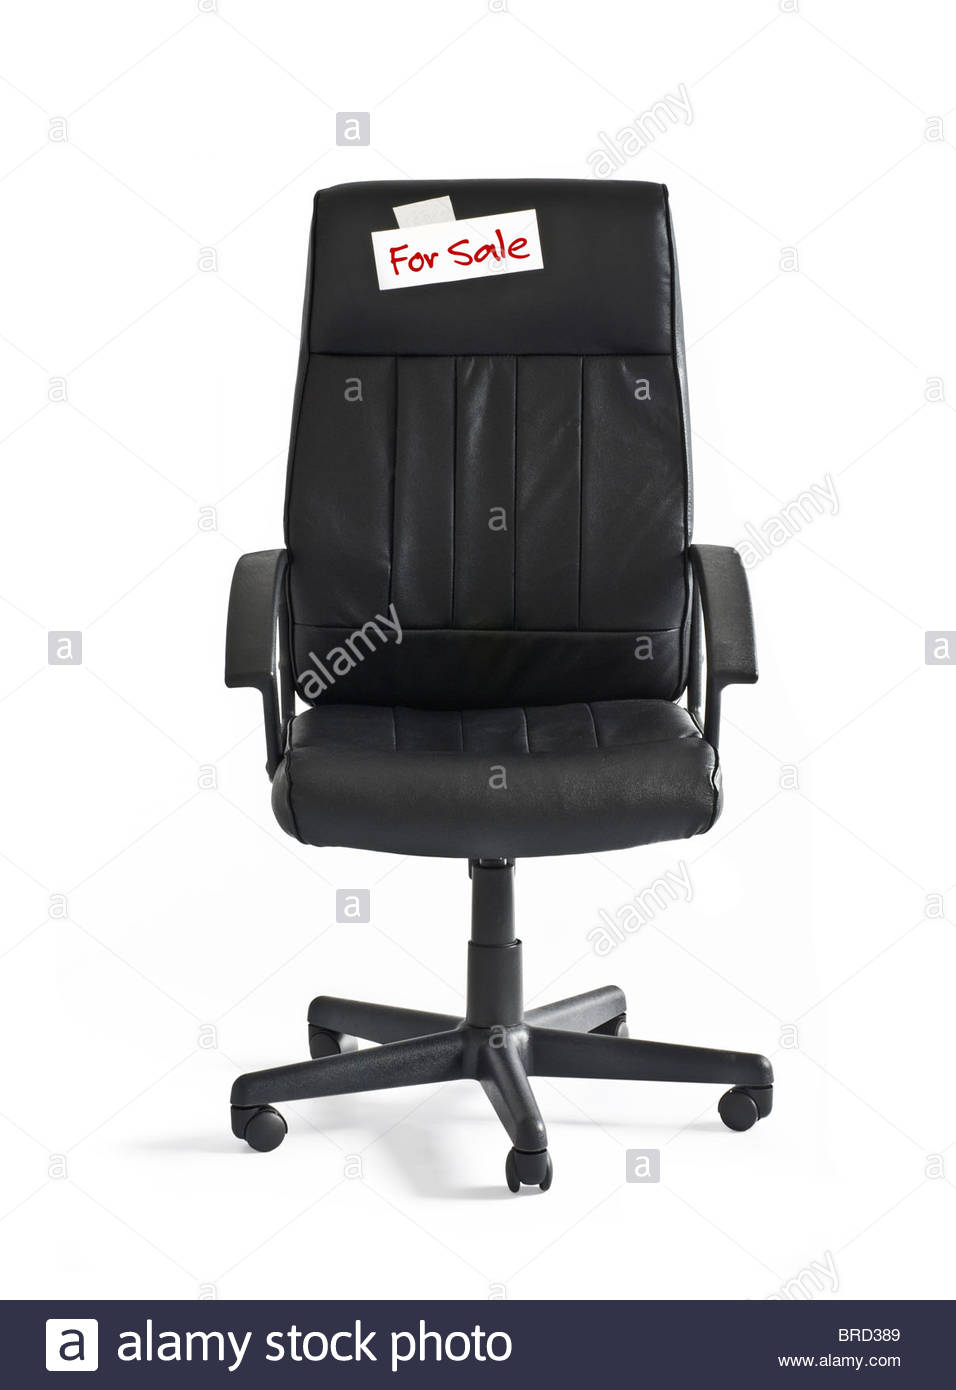 office chair sale toddler personalized for stock photo 31635417 alamy